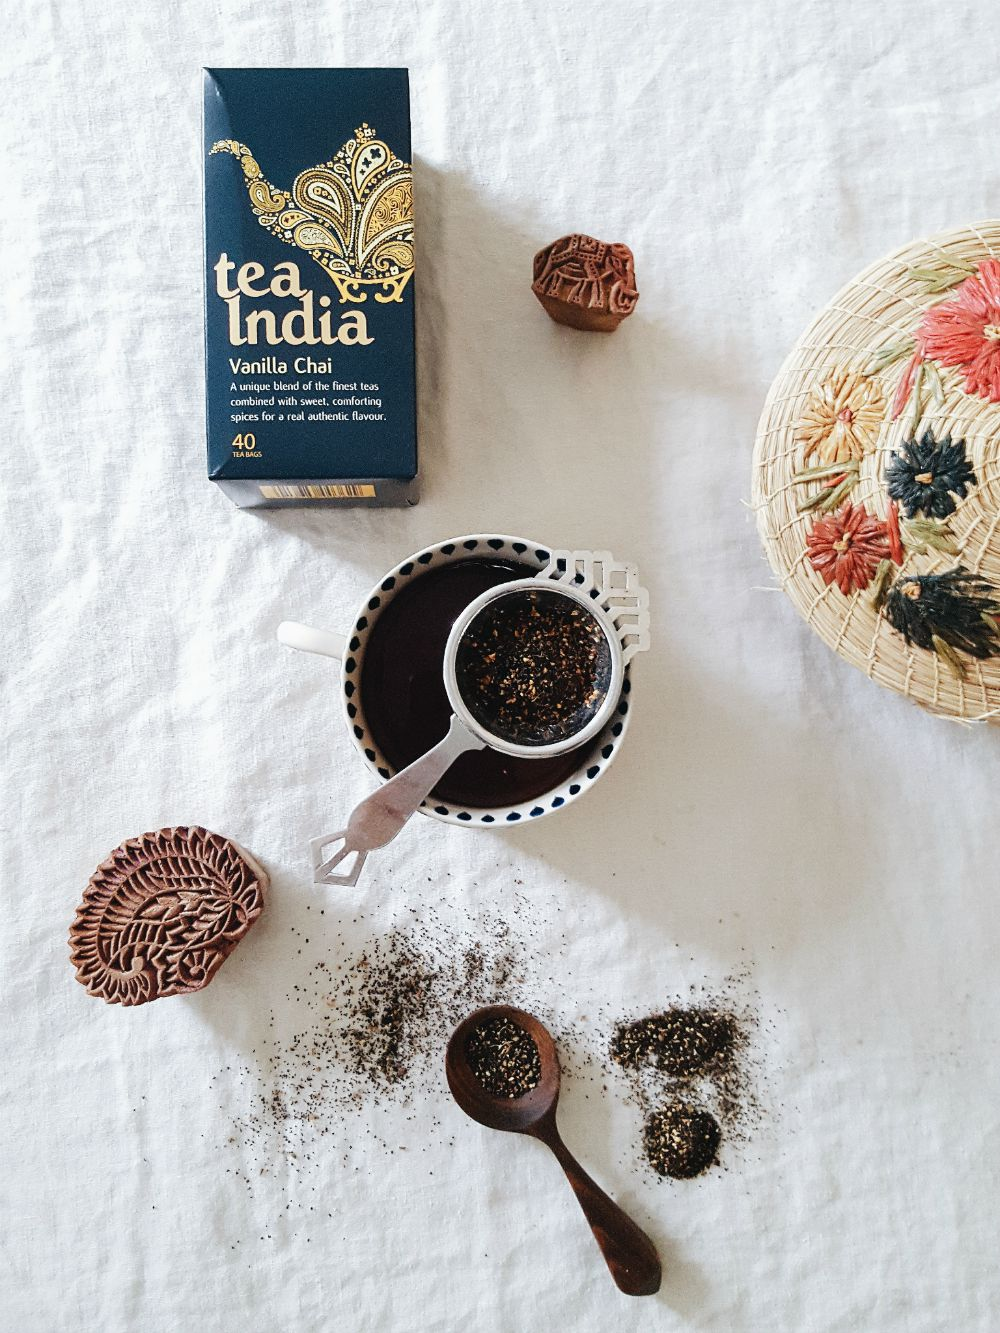 Vanilla Chai from Tea INdia